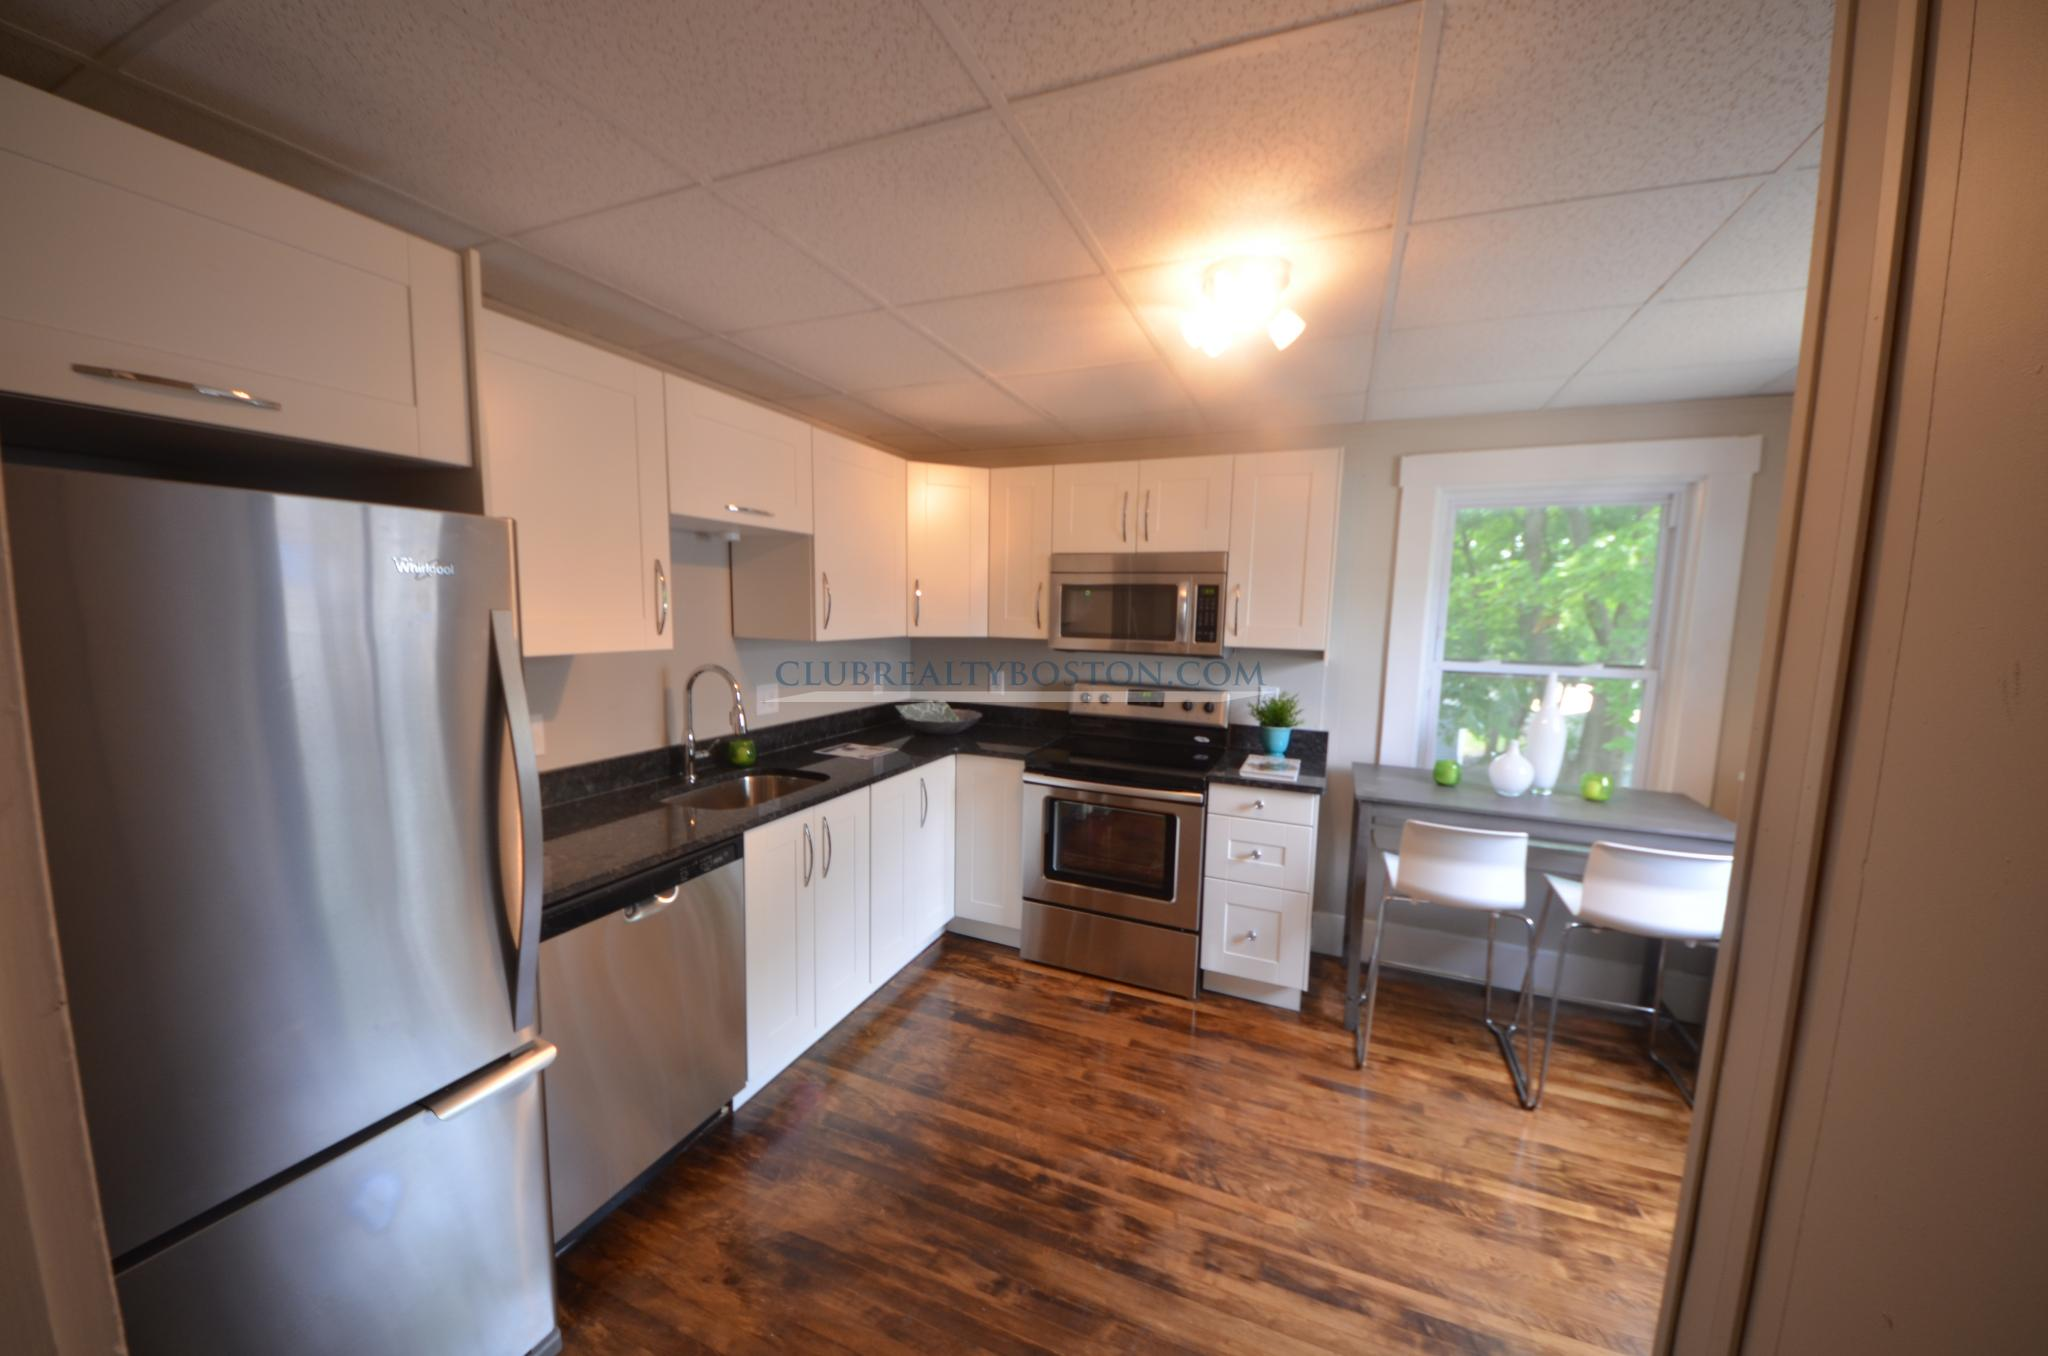 4 Beds, 1 Bath apartment in Waltham for $825